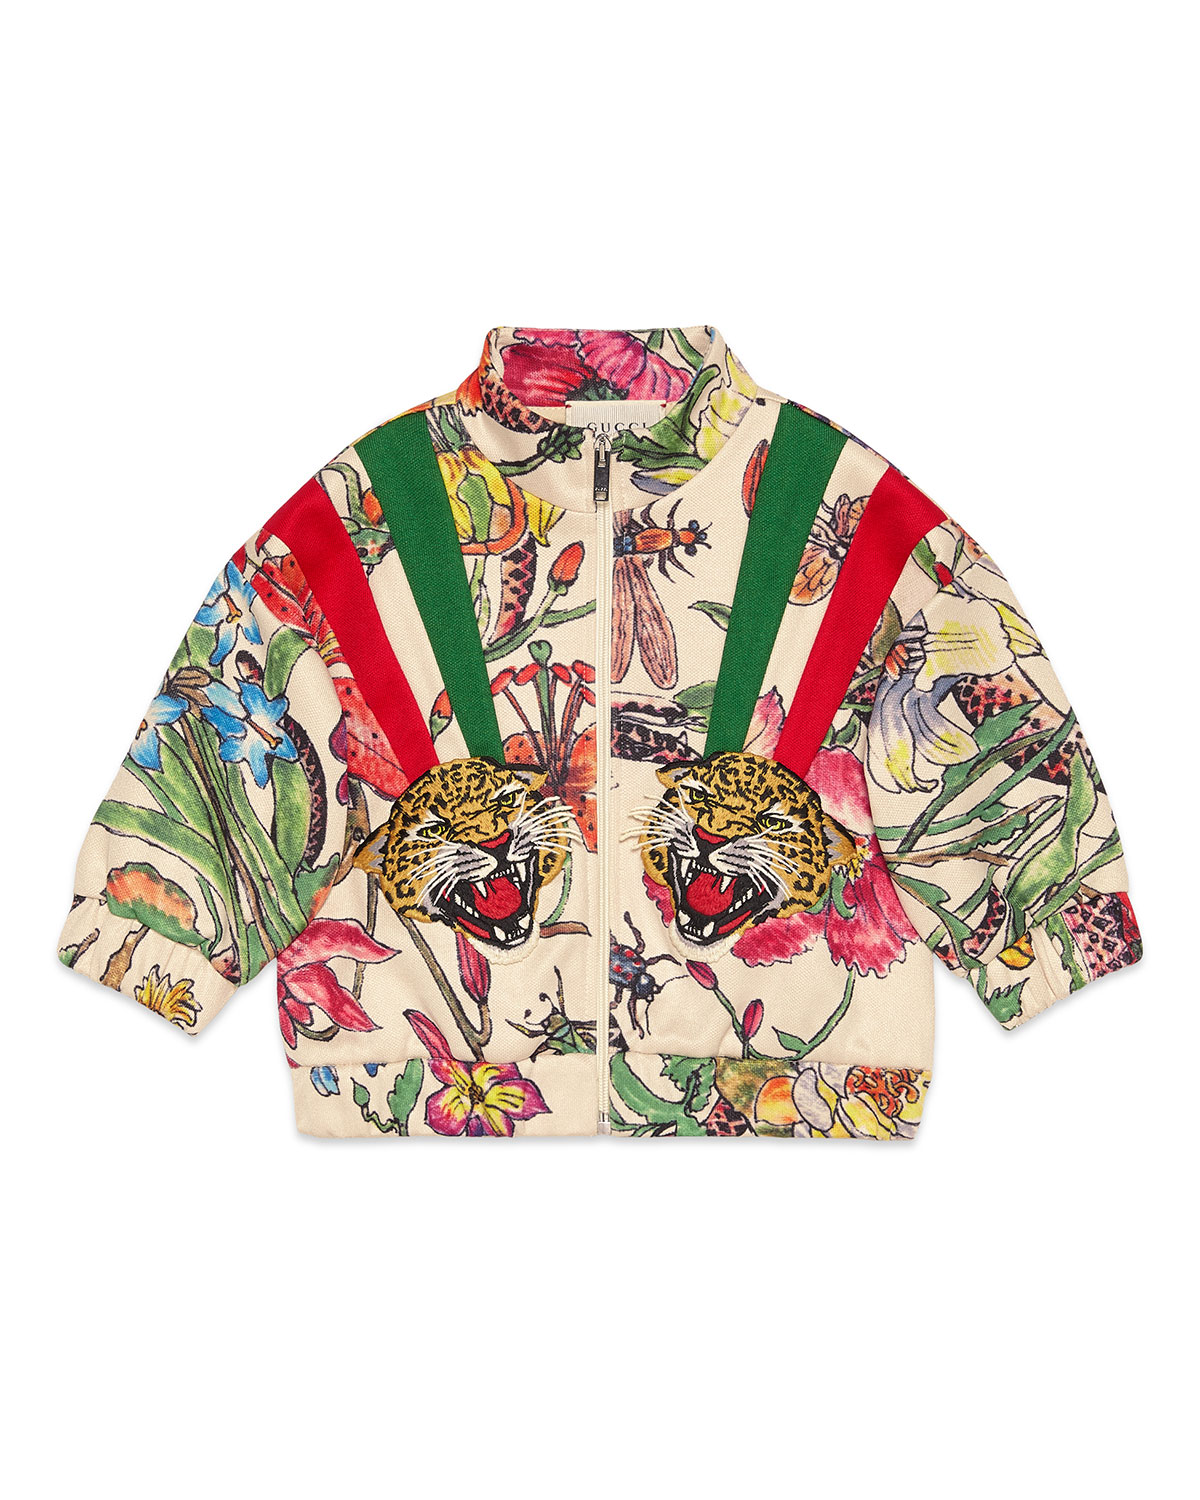 Gucci Kids' Floral Zip-up Sweatshirt W/ Stripes & Tiger Patches In White